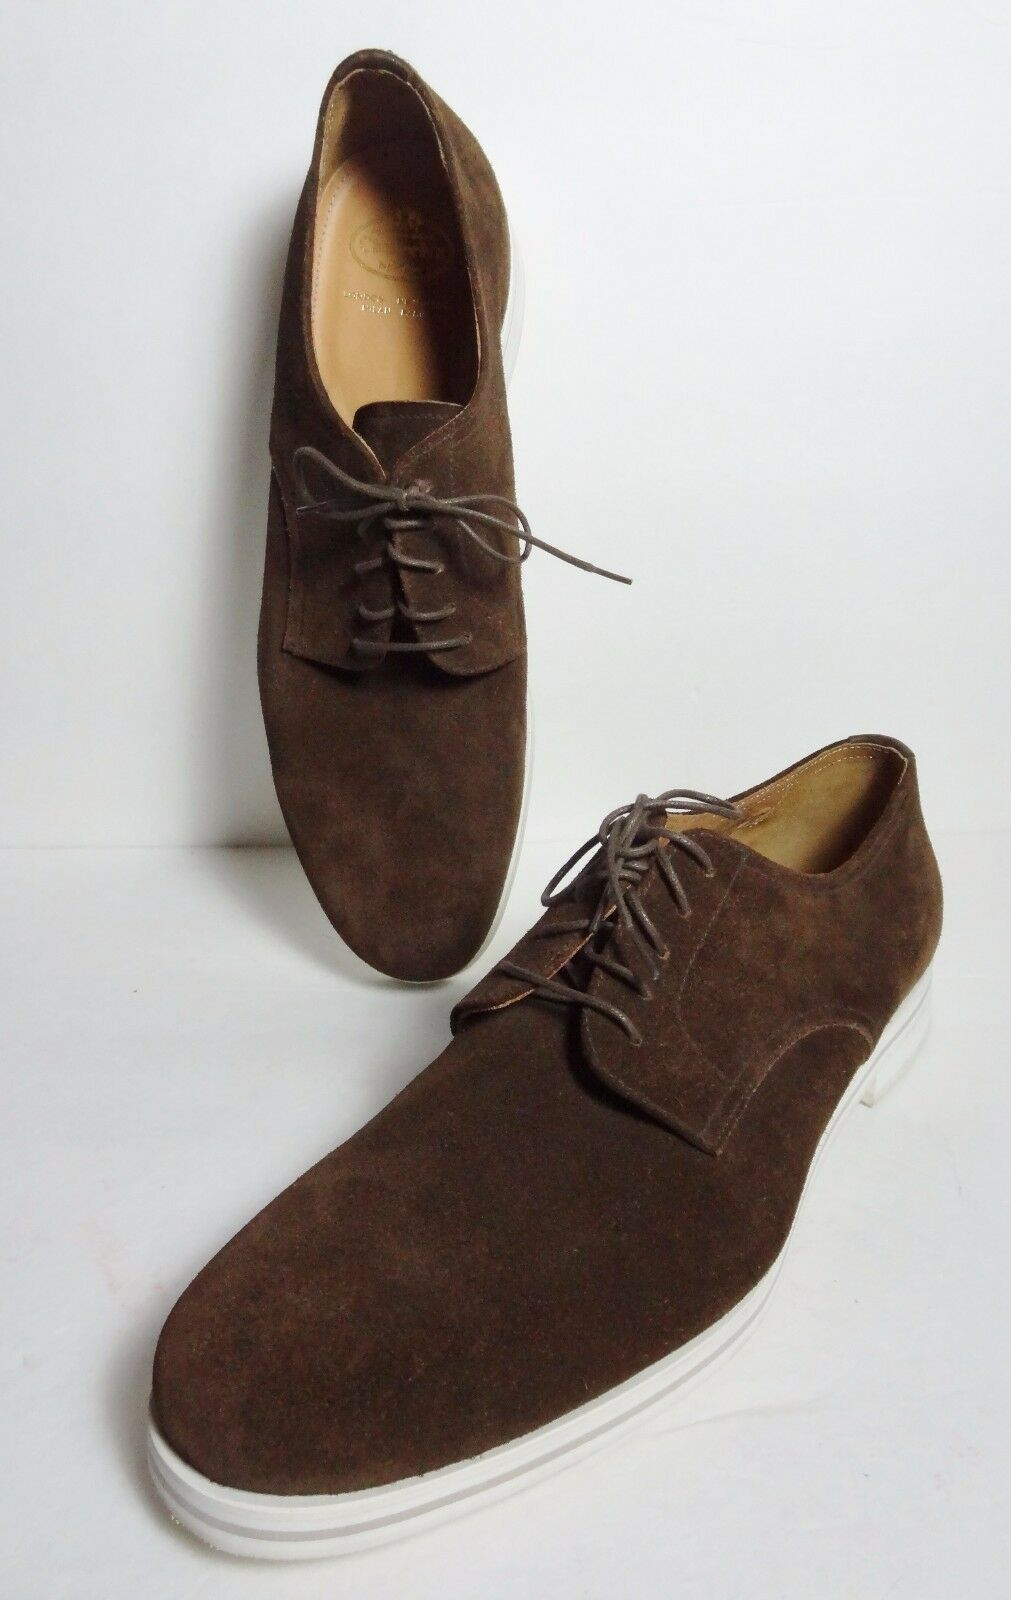 New Church's Suede brown Leather Loafers Waterline shoes Mens 12 uk   13 us